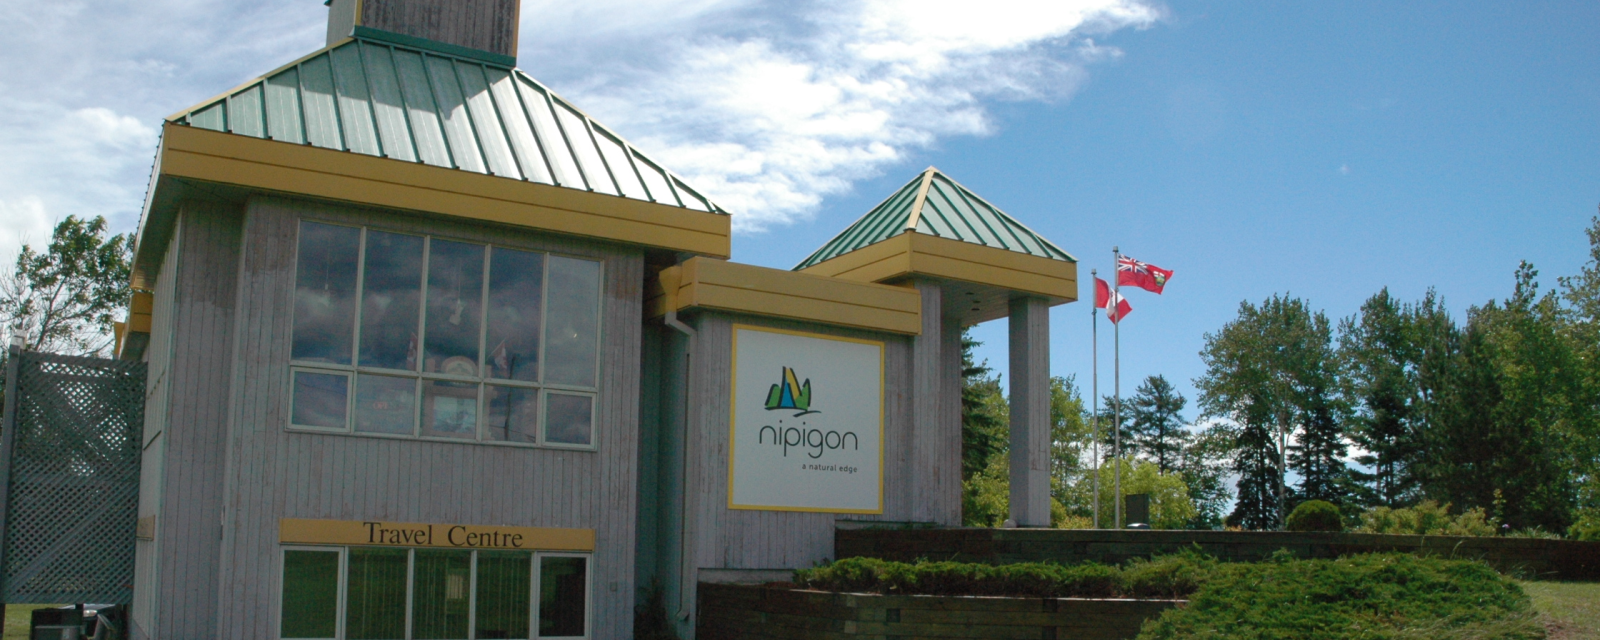 Nipigon Tourist Information Centre